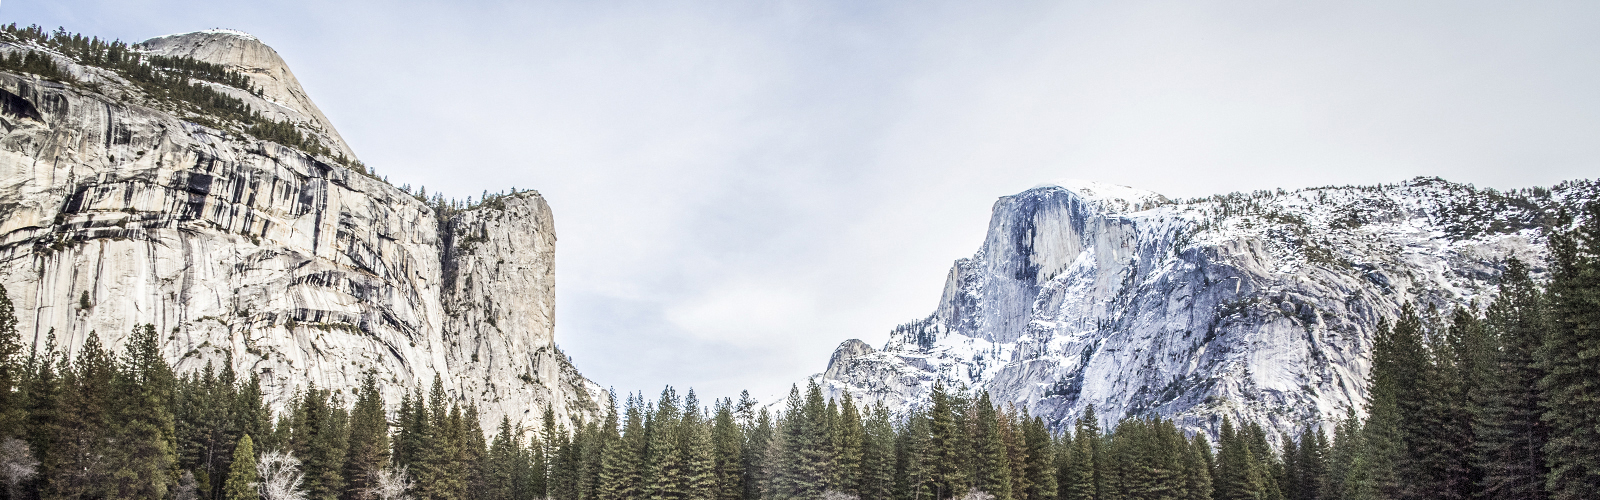 Yosemite National Park Winter 2019